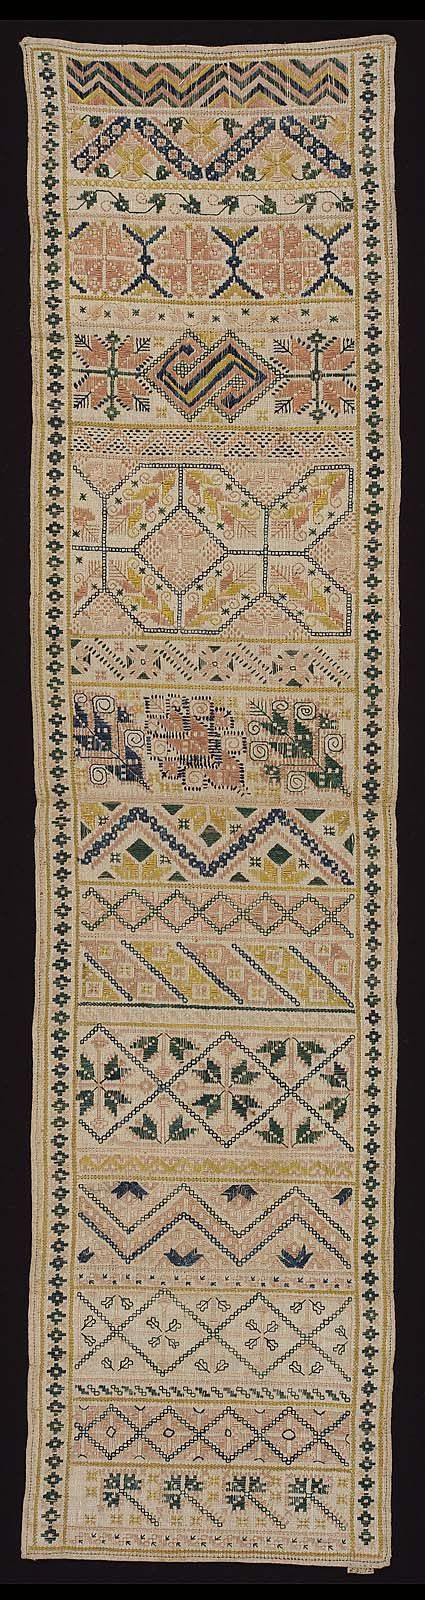 Spanish Sampler ~ 19th century ~ linen plain weaved embroidered with silk ~ Stitches: counted-satin, detached-chain, double-running, eyelet, long-armed cross, running ~ Museum of Fine Arts, Boston